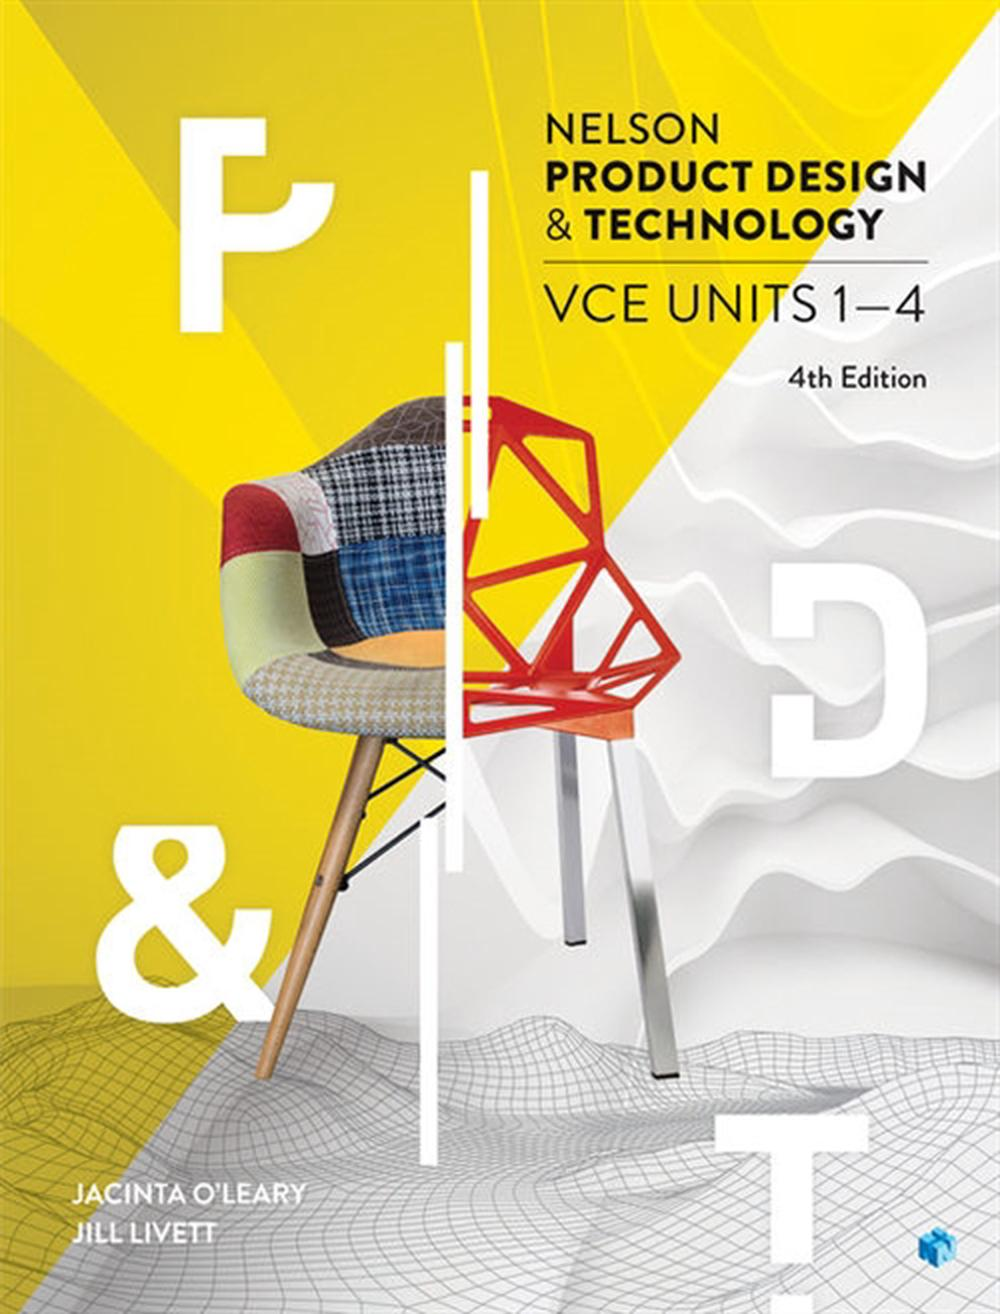 Nelson Product Design and Technology VCE Units 1-4 Student Book with 4 Access Codes by J. Livett,J. O'Leary, ISBN: 9780170400336